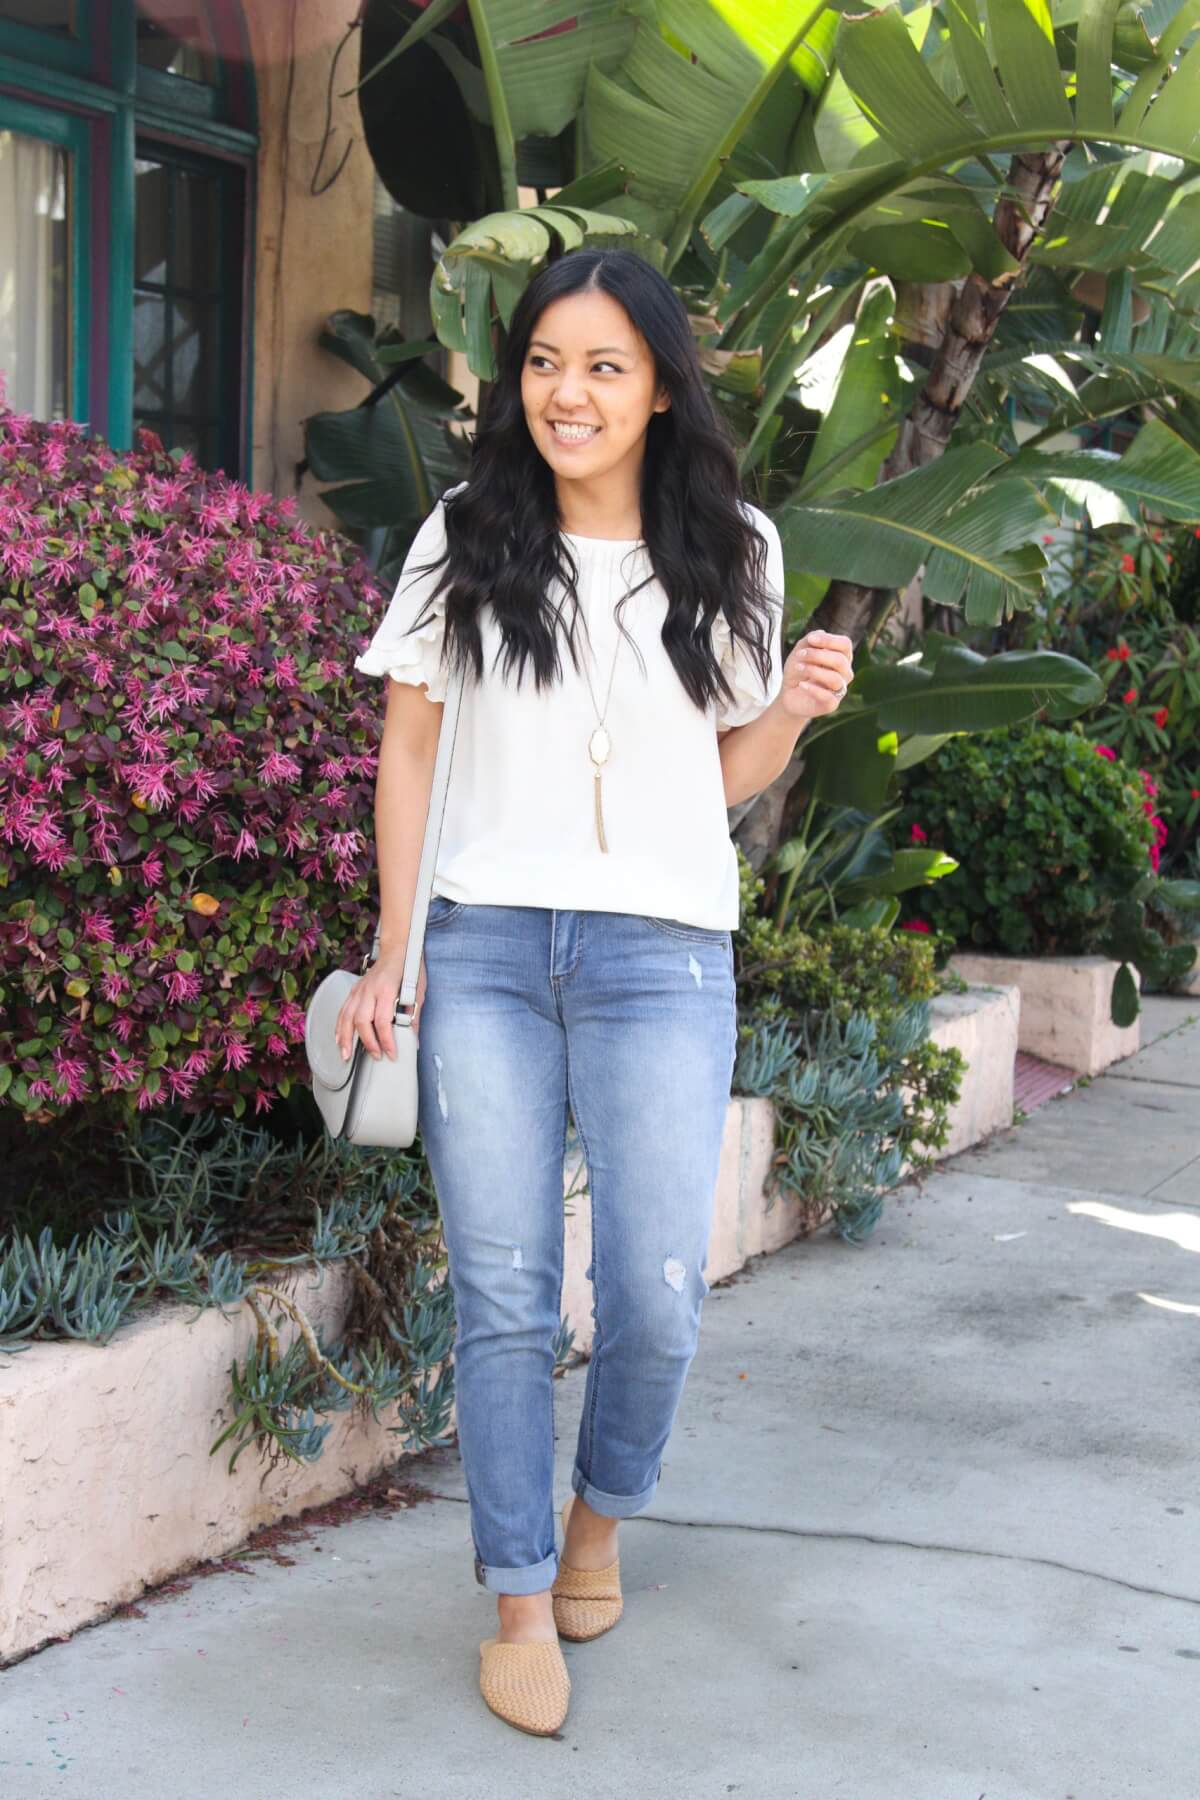 white top for spring: white top, girlfriend jeans, nude flats, statement necklace, gray bag